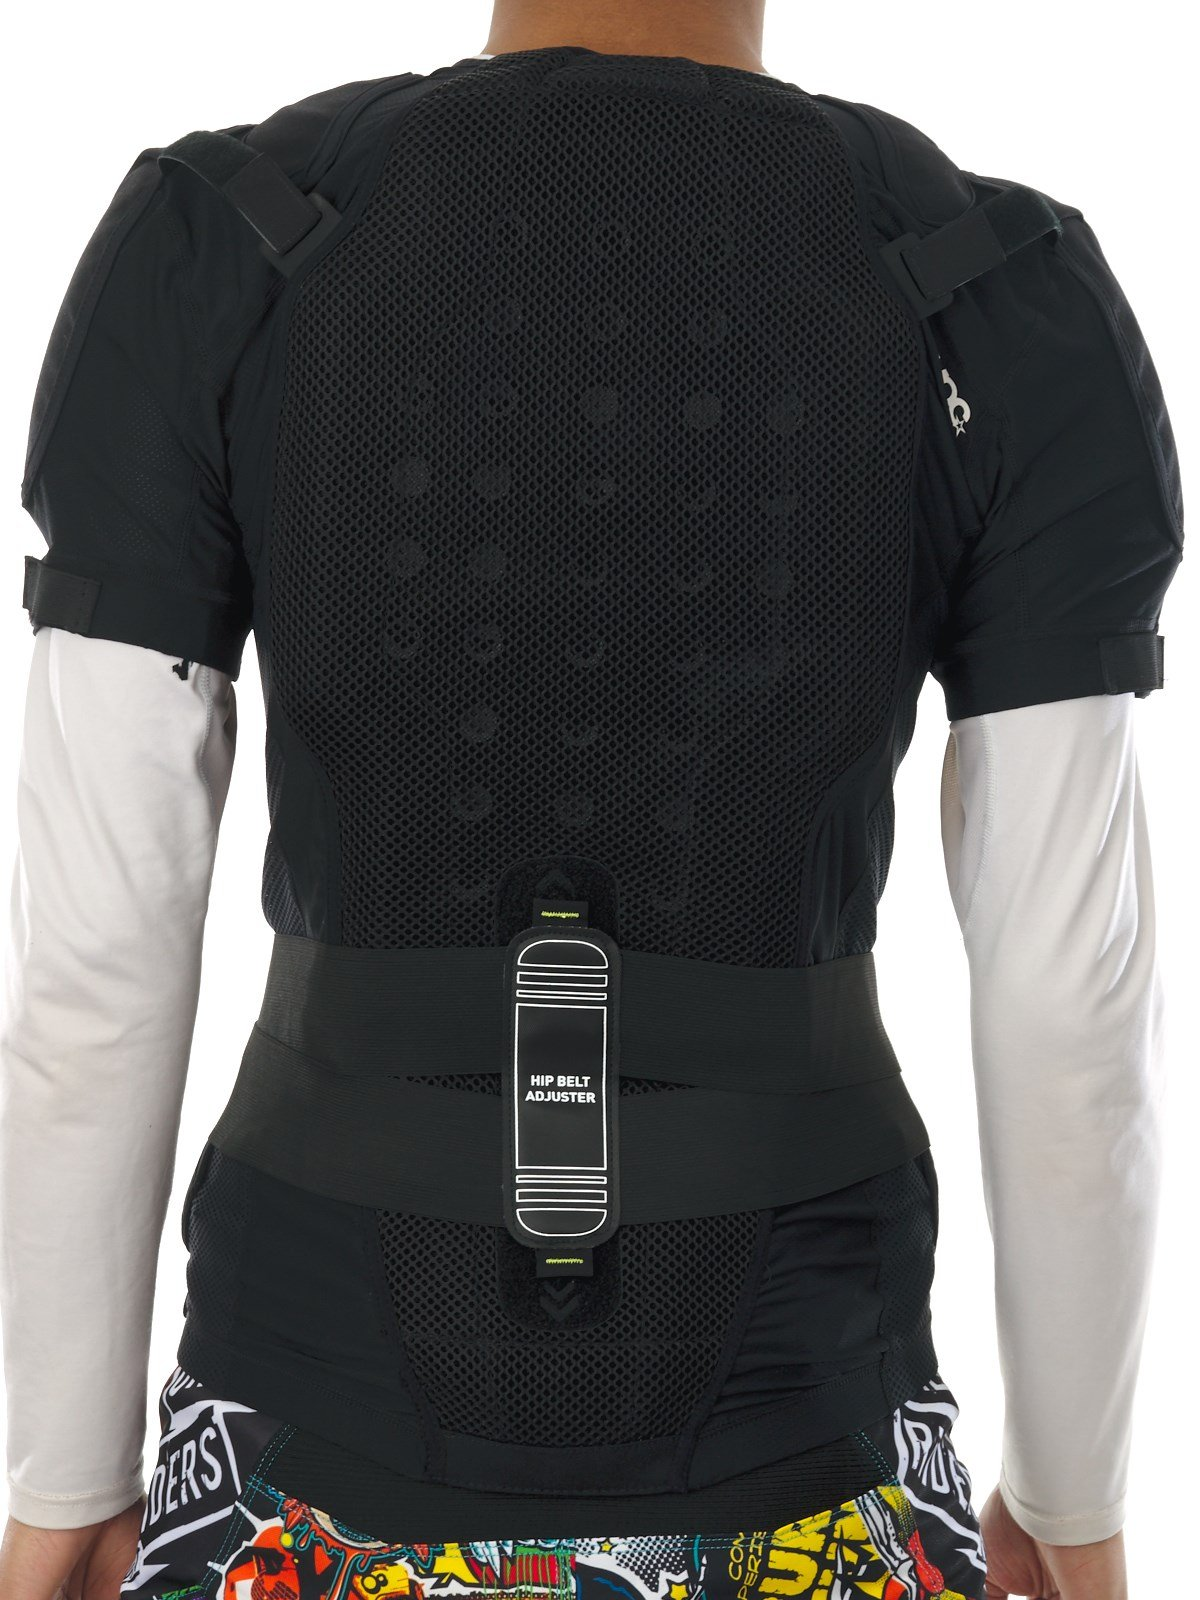 Evoc Protector Jacket black (Size: XL) chest protector